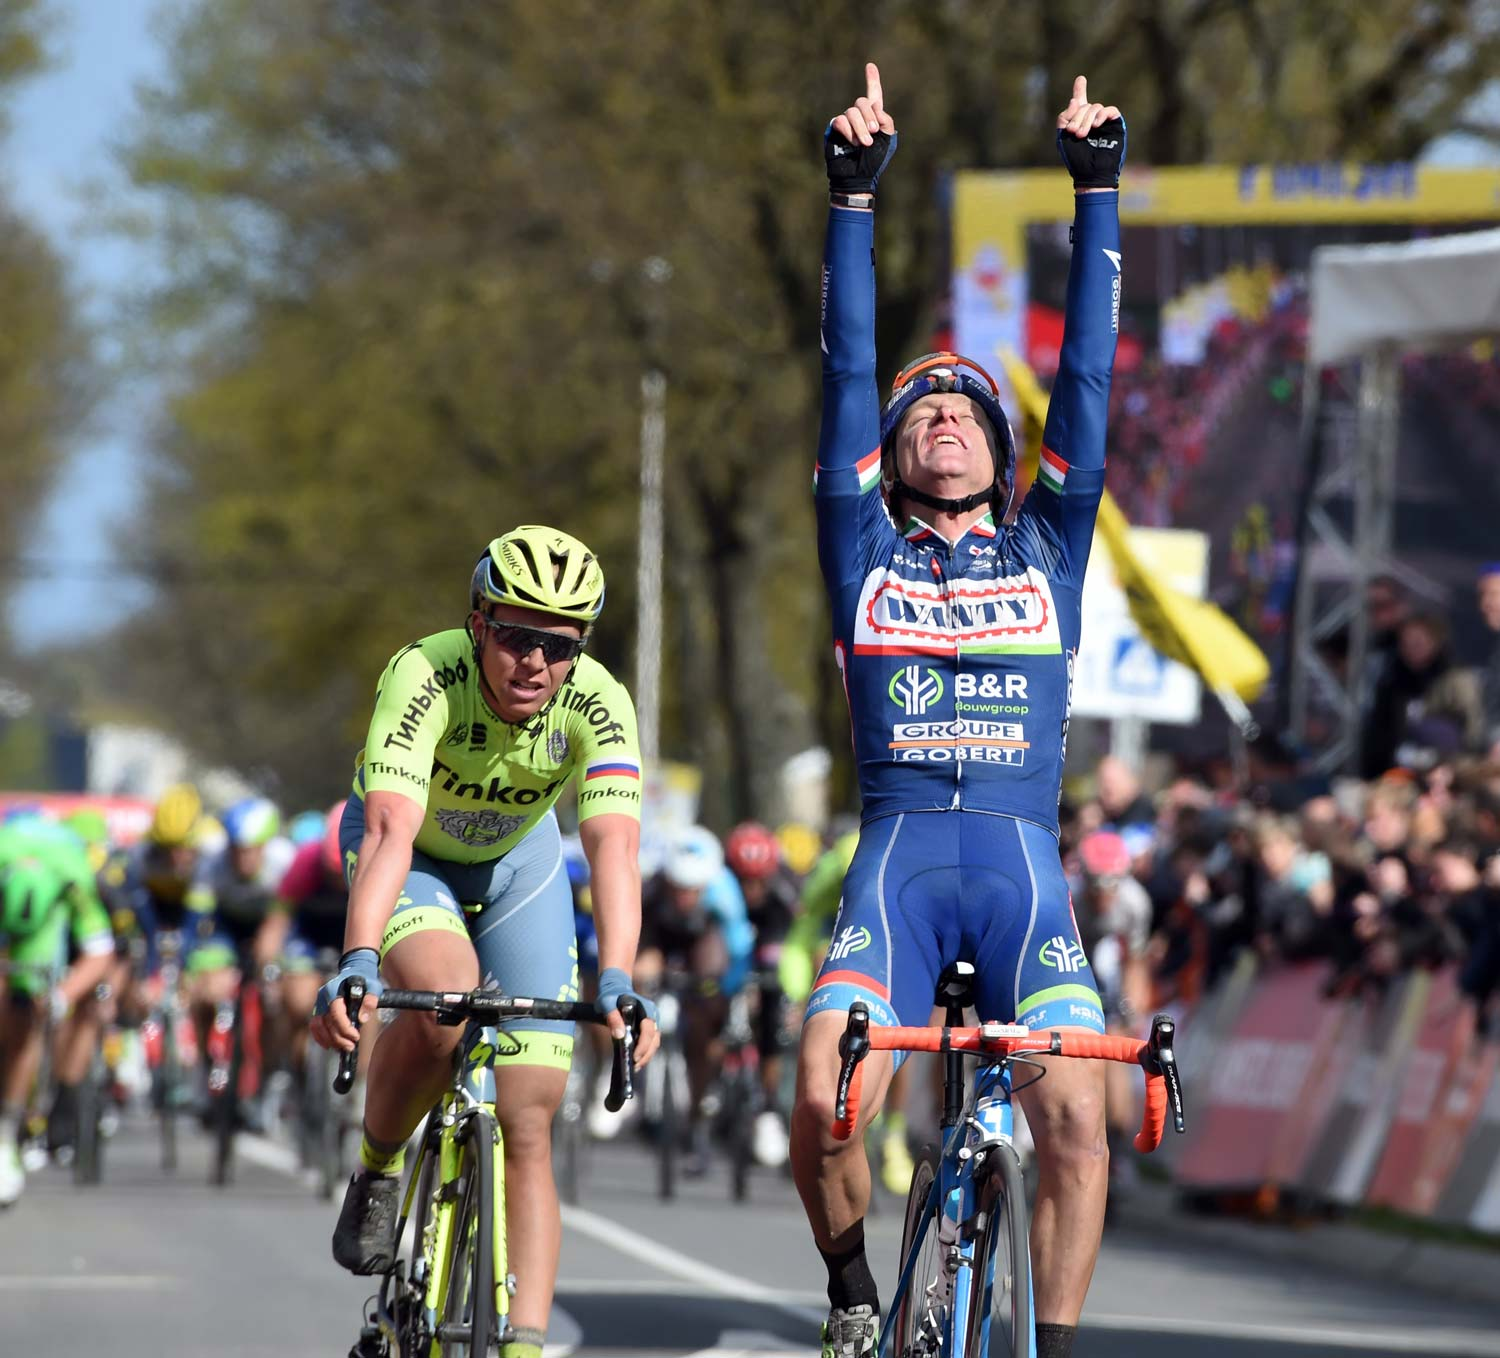 Enrico Gasparotto delivers the win that Wanty-Groupe Gobert so desperately needed. This was one for Antoine! Photo: Graham Watson